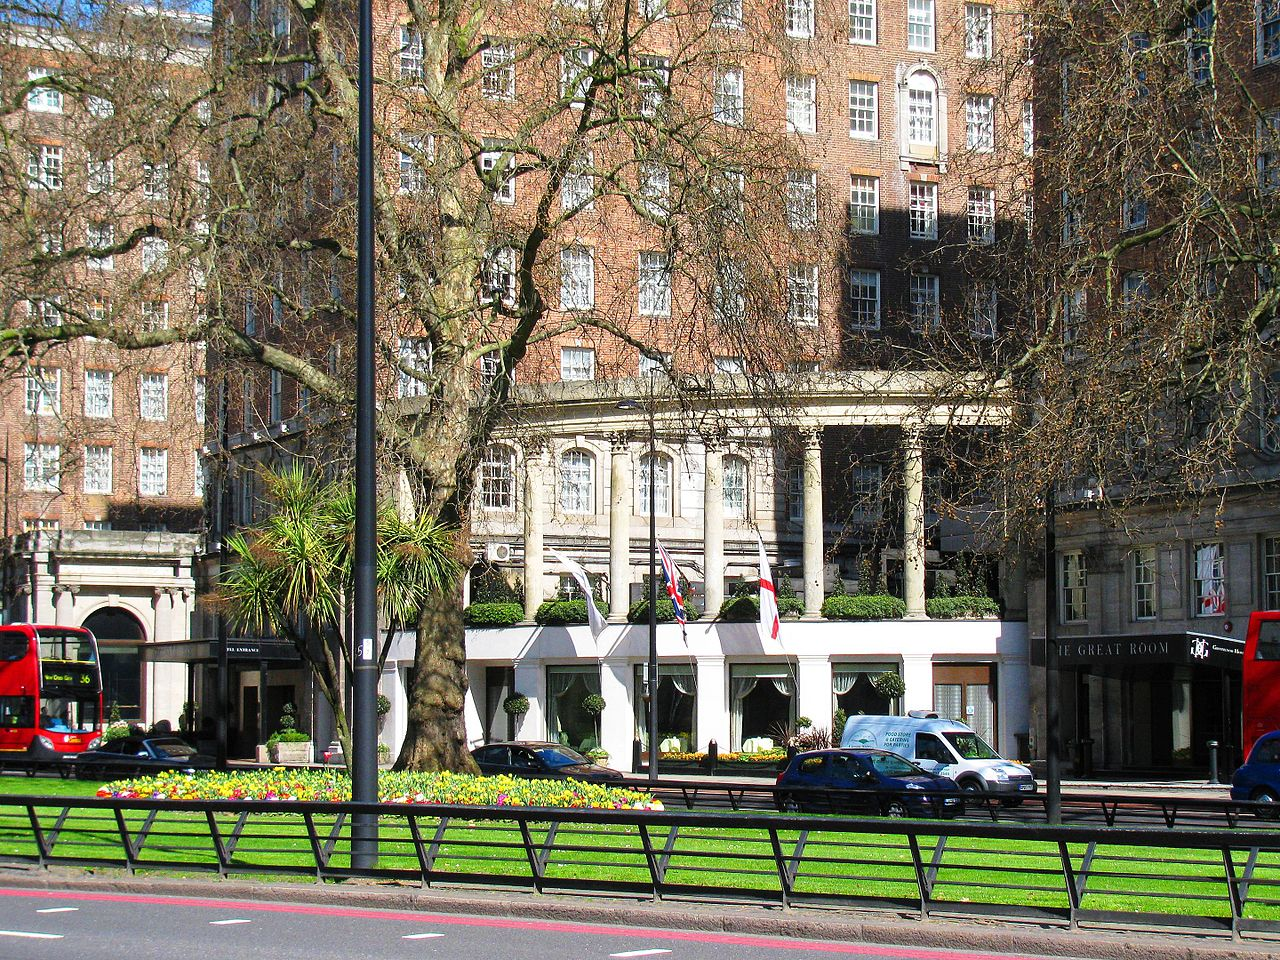 The Grosvenor Hotel Buckingham Palace Road London